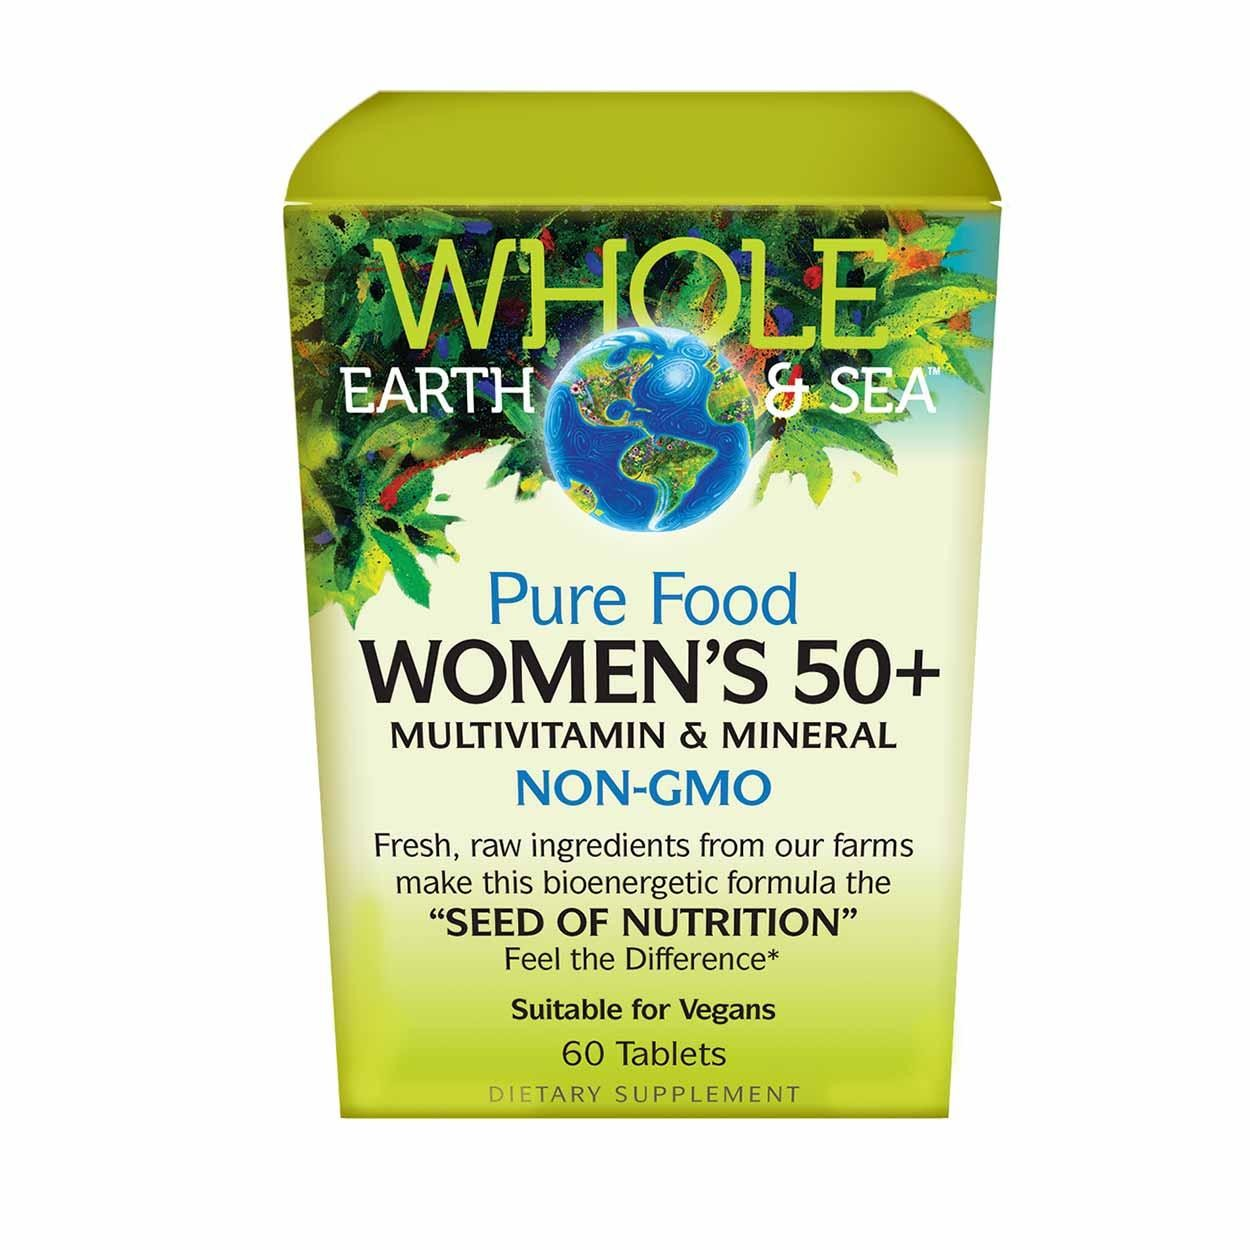 Women's 50+ Multivitamin and Mineral